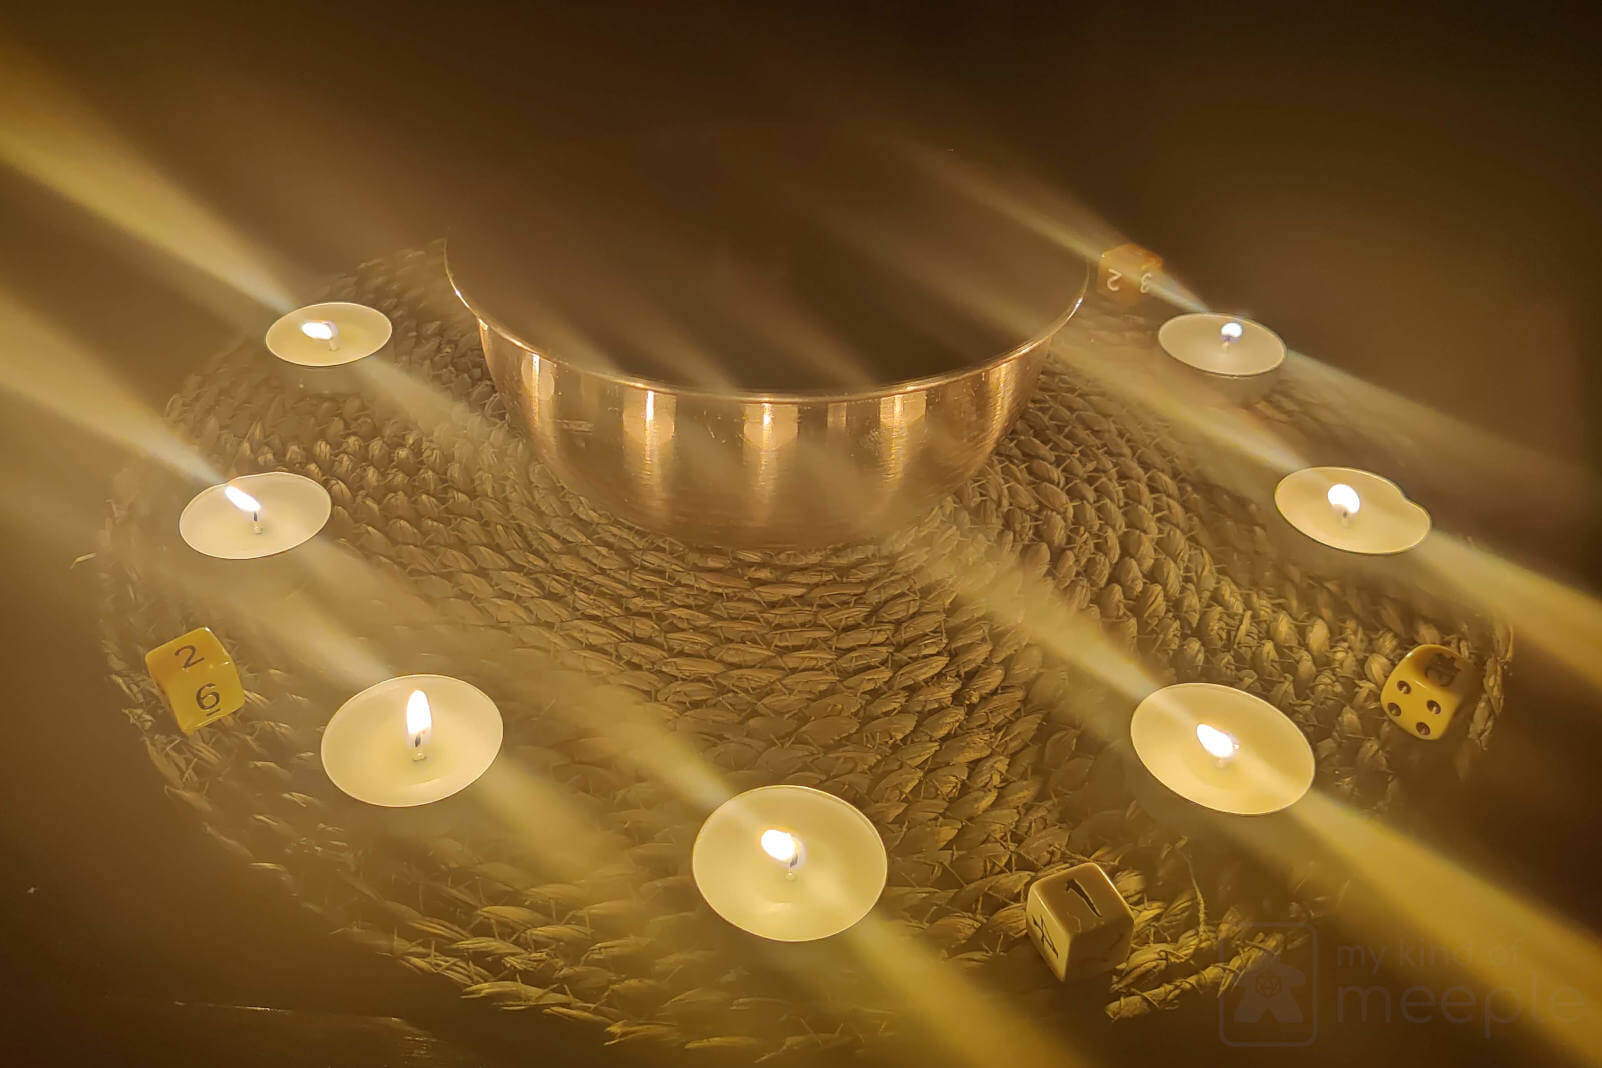 Ten candles around a fireproof bowl